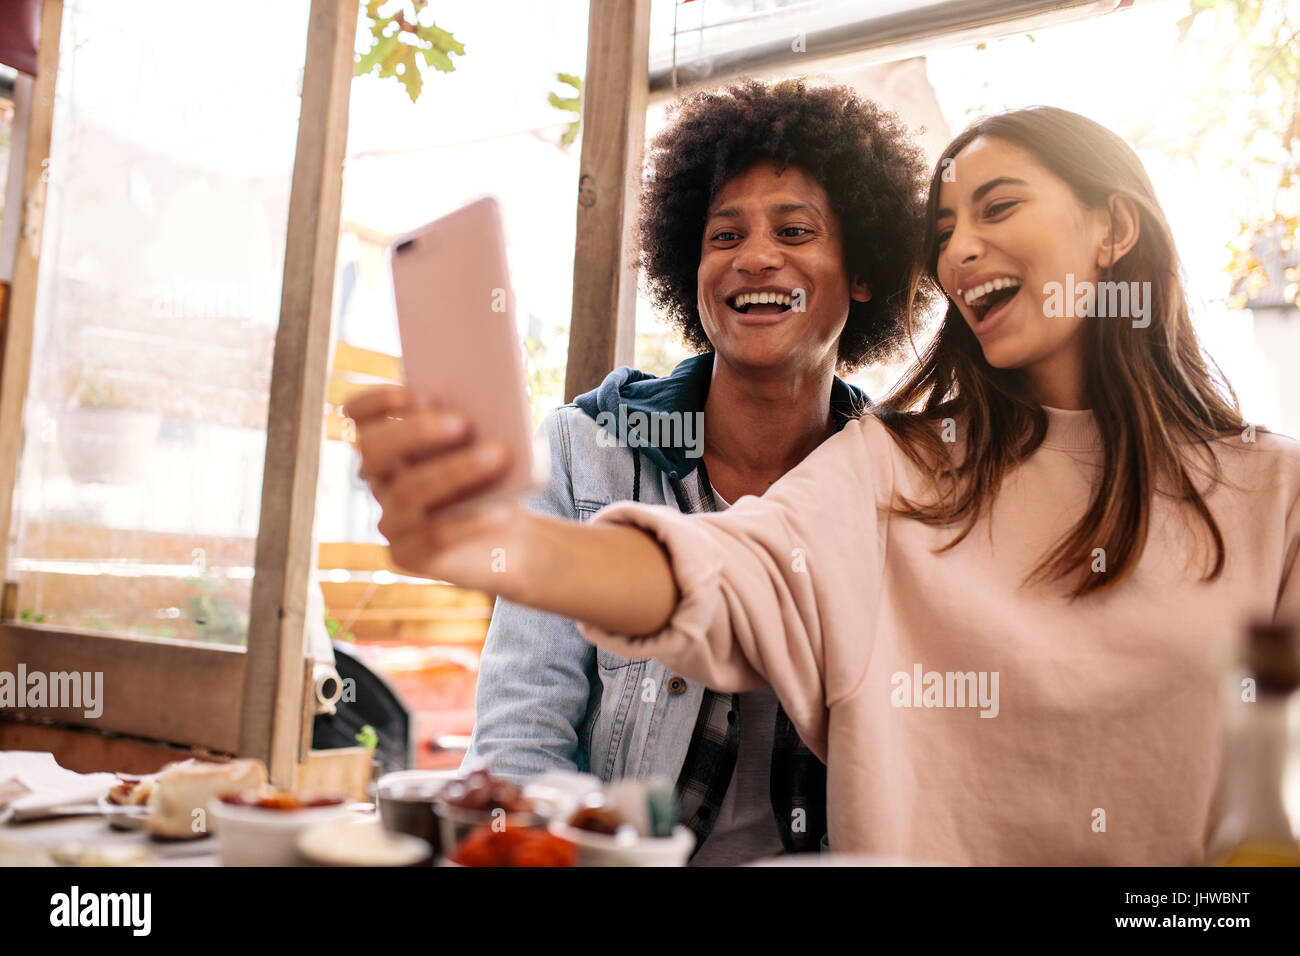 Young couple sitting in the cafe and taking selfie with smart phone. Beautiful woman taking self portrait with her - Stock Image